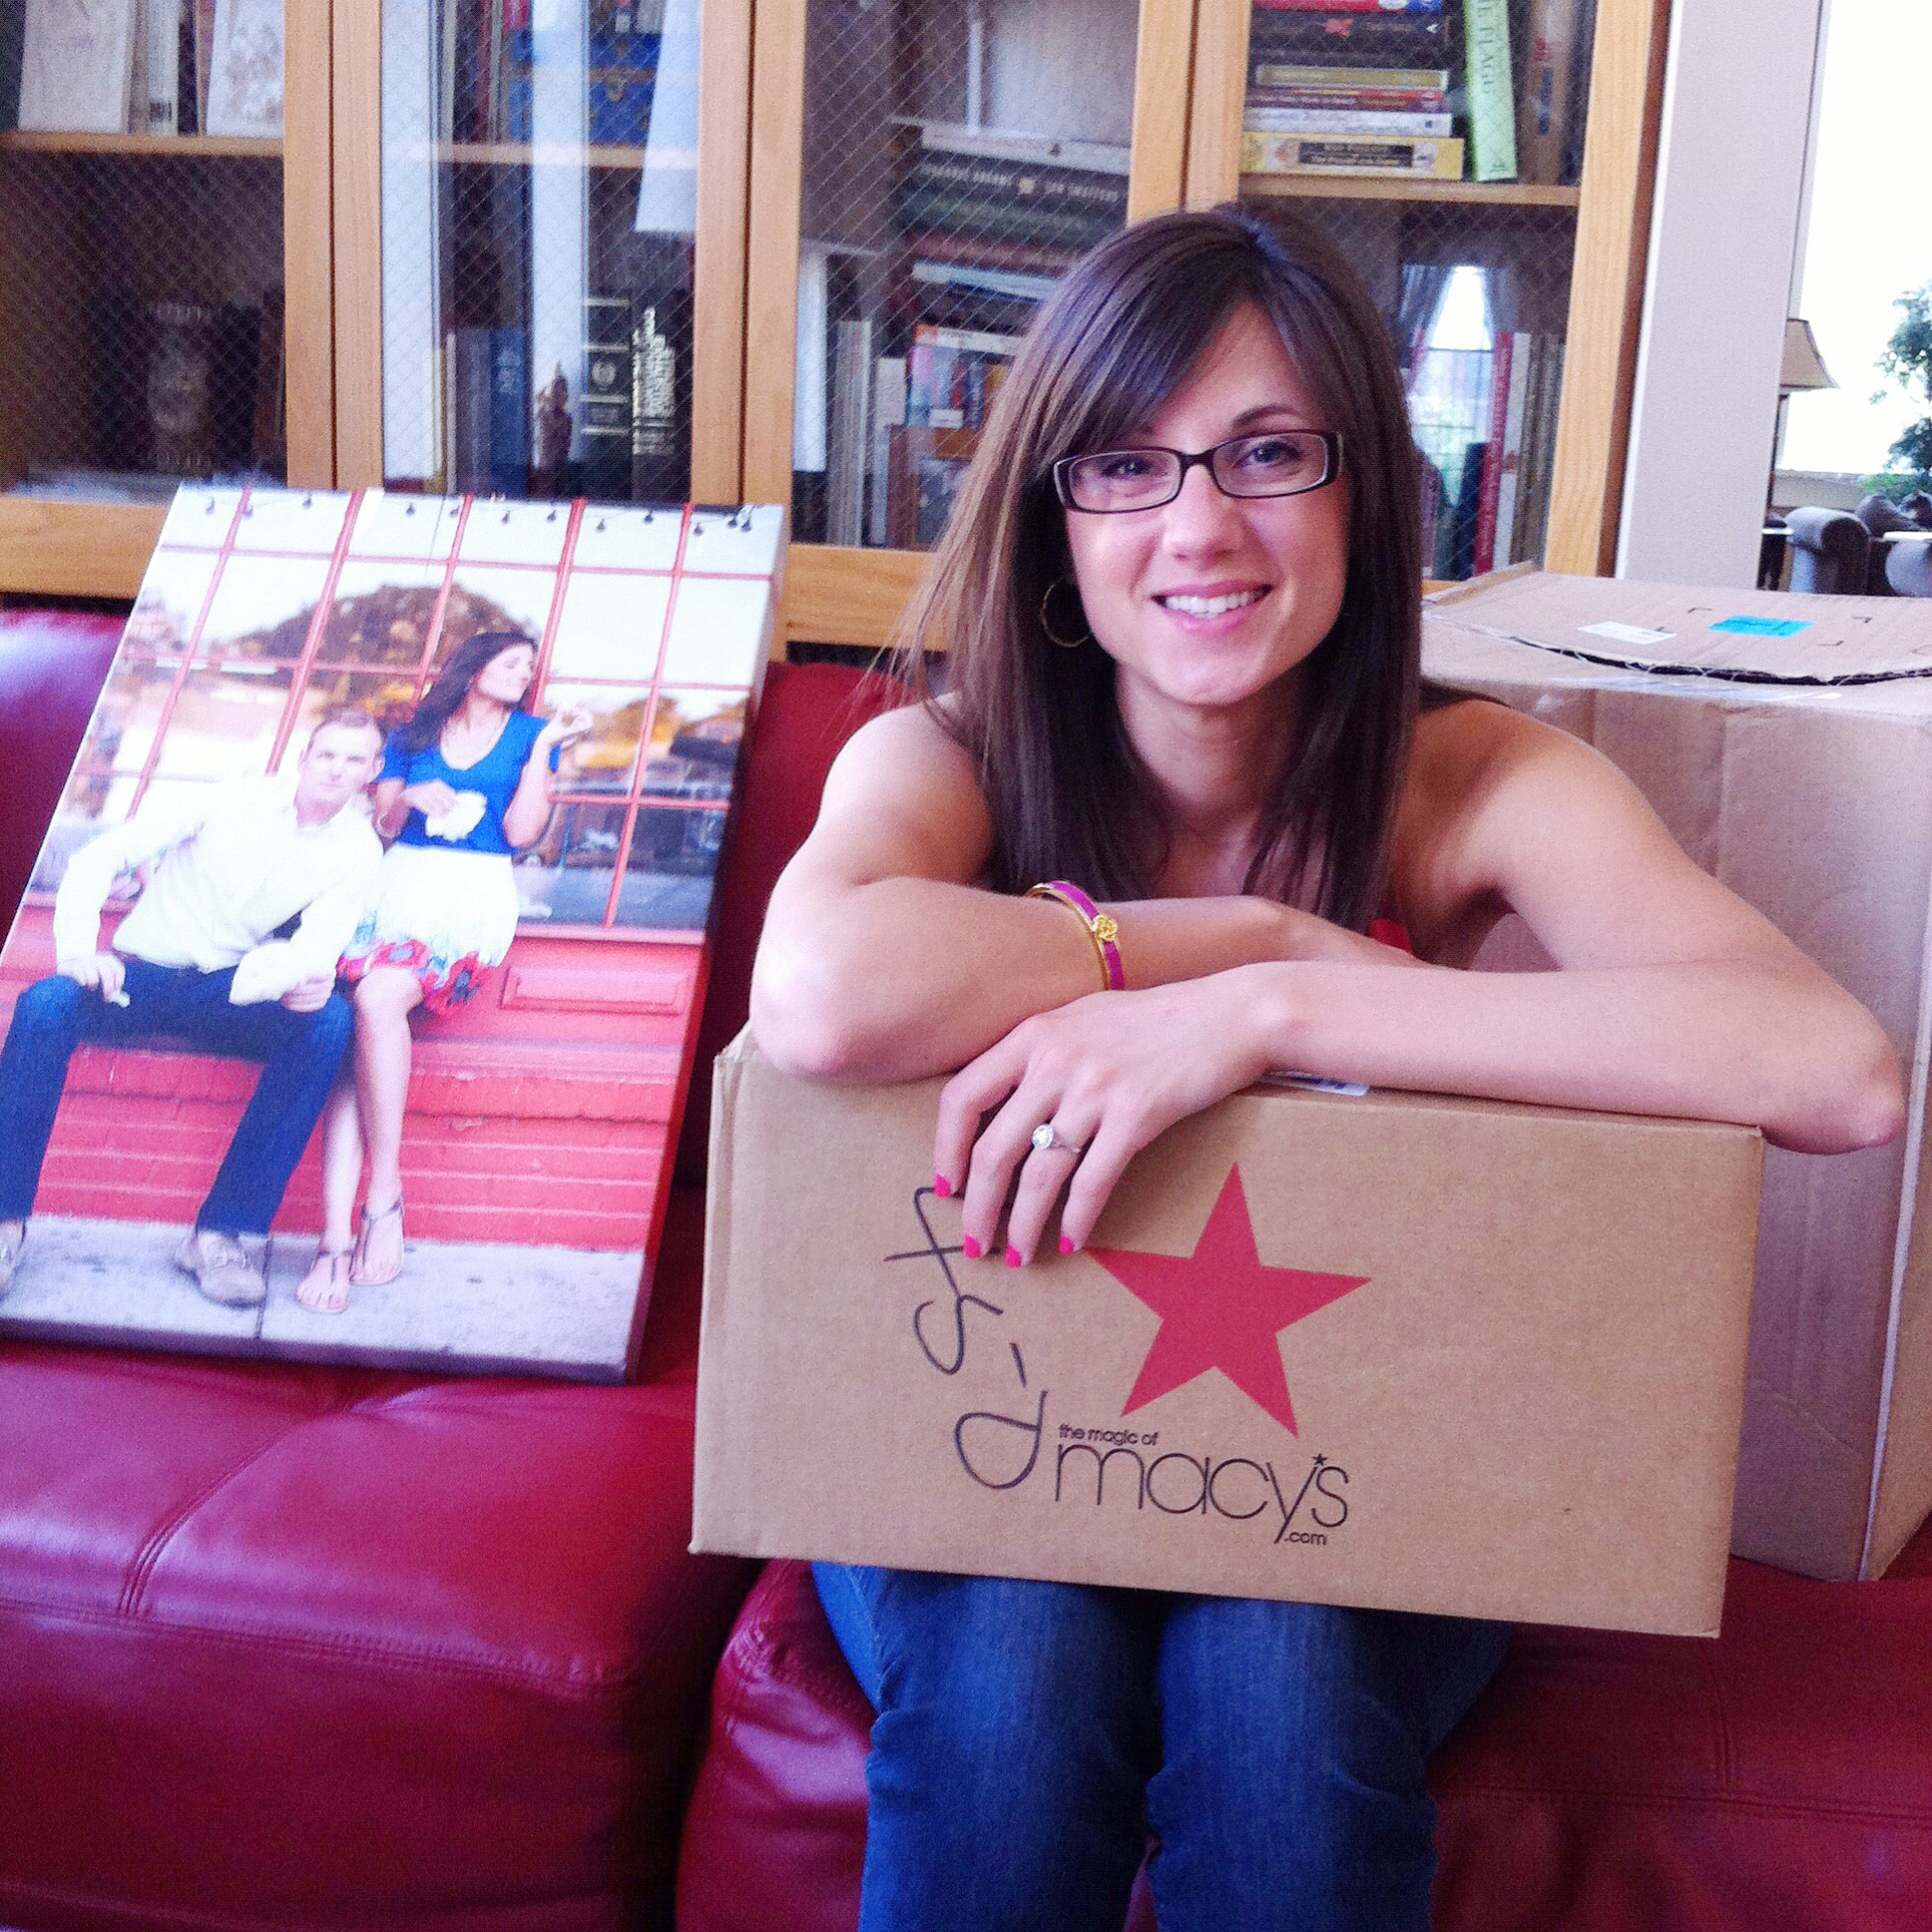 Here's engaged me in 2012 excited about Macy's wedding gifts!